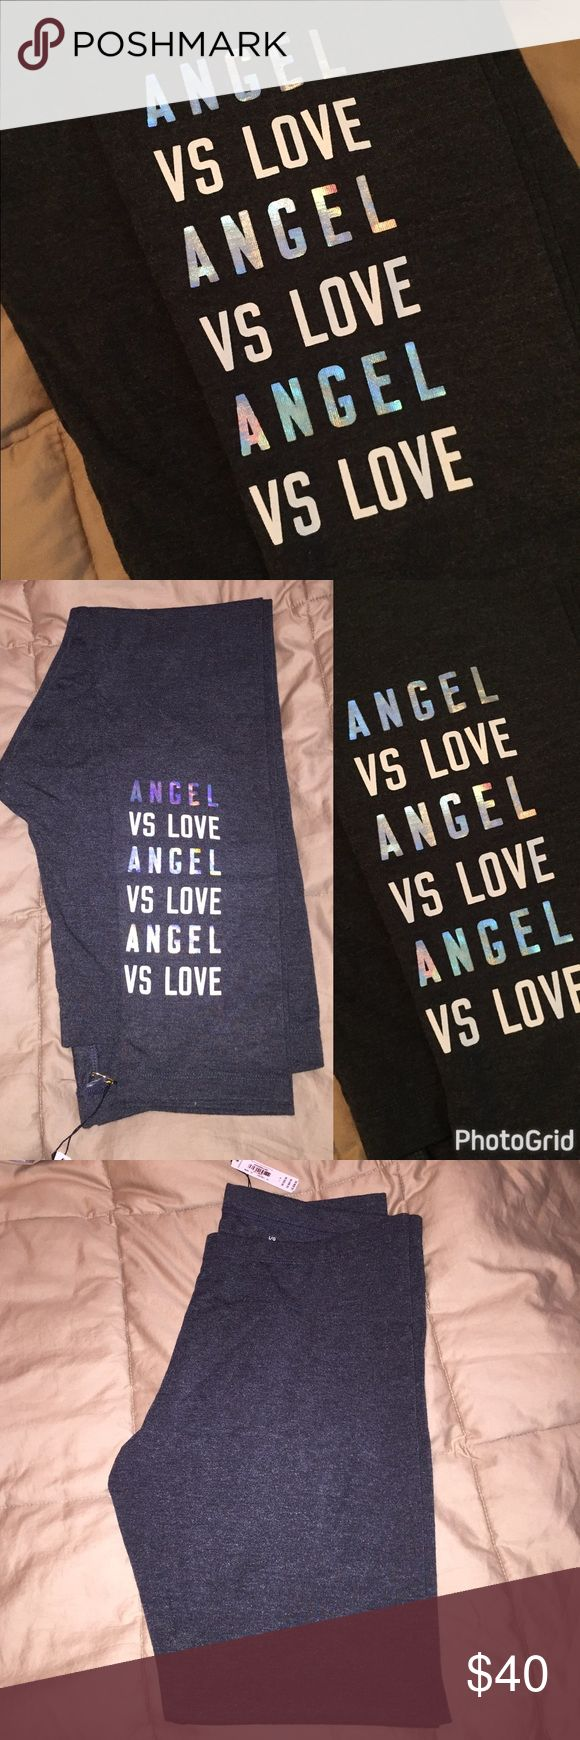 🆕VS LOVE Leggings Charcoal heathered grey leggings with iridescent and white text on the leg. NO TRADES ❗️PRICE FIRM, OFFERS WILL BE IGNORED❗️ Victoria's Secret Pants Leggings